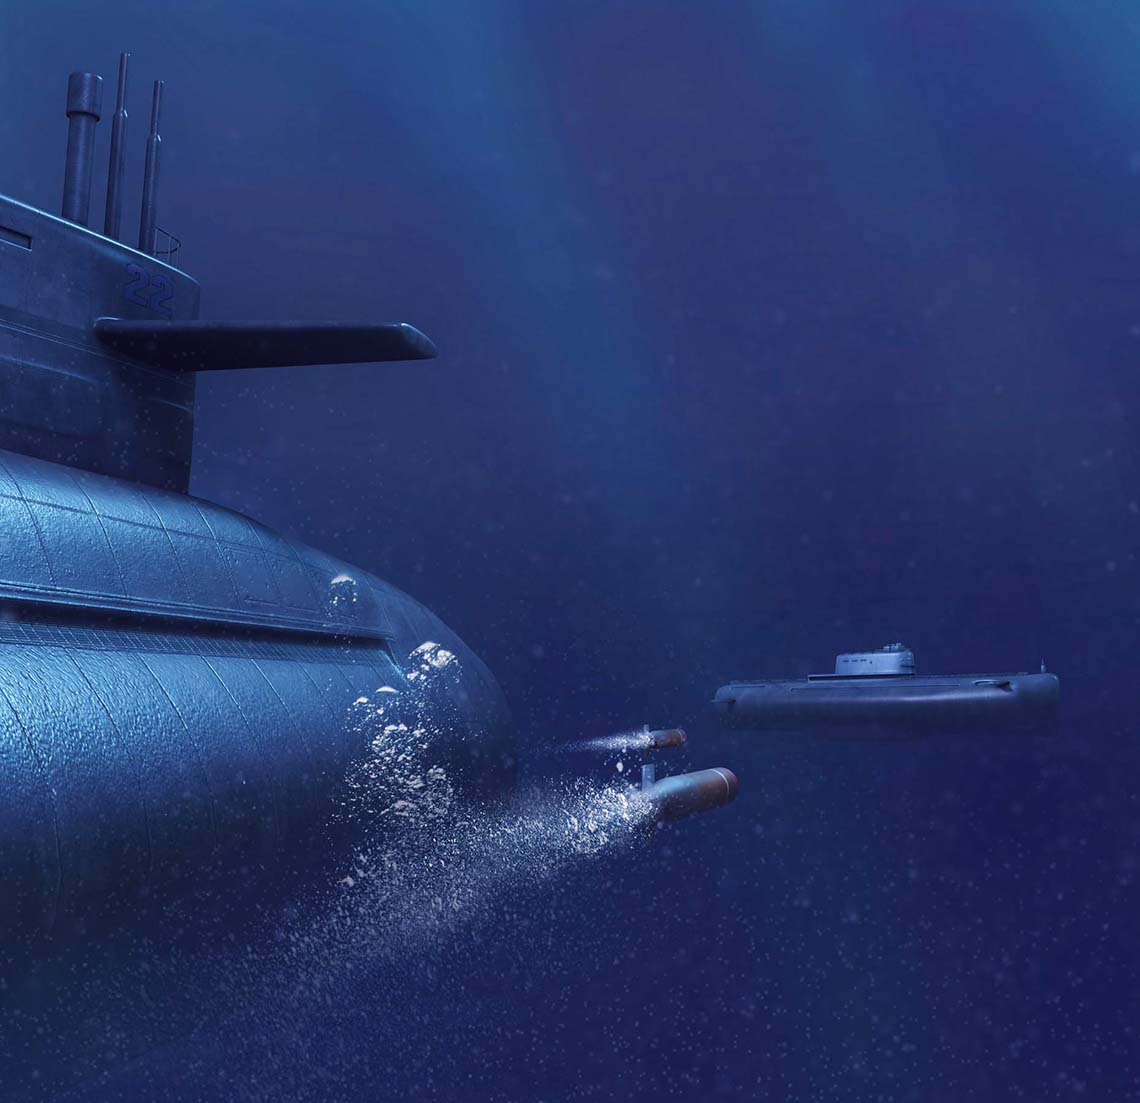 cgi-illustration-action-submarine-shooting-attack-missile.jpg